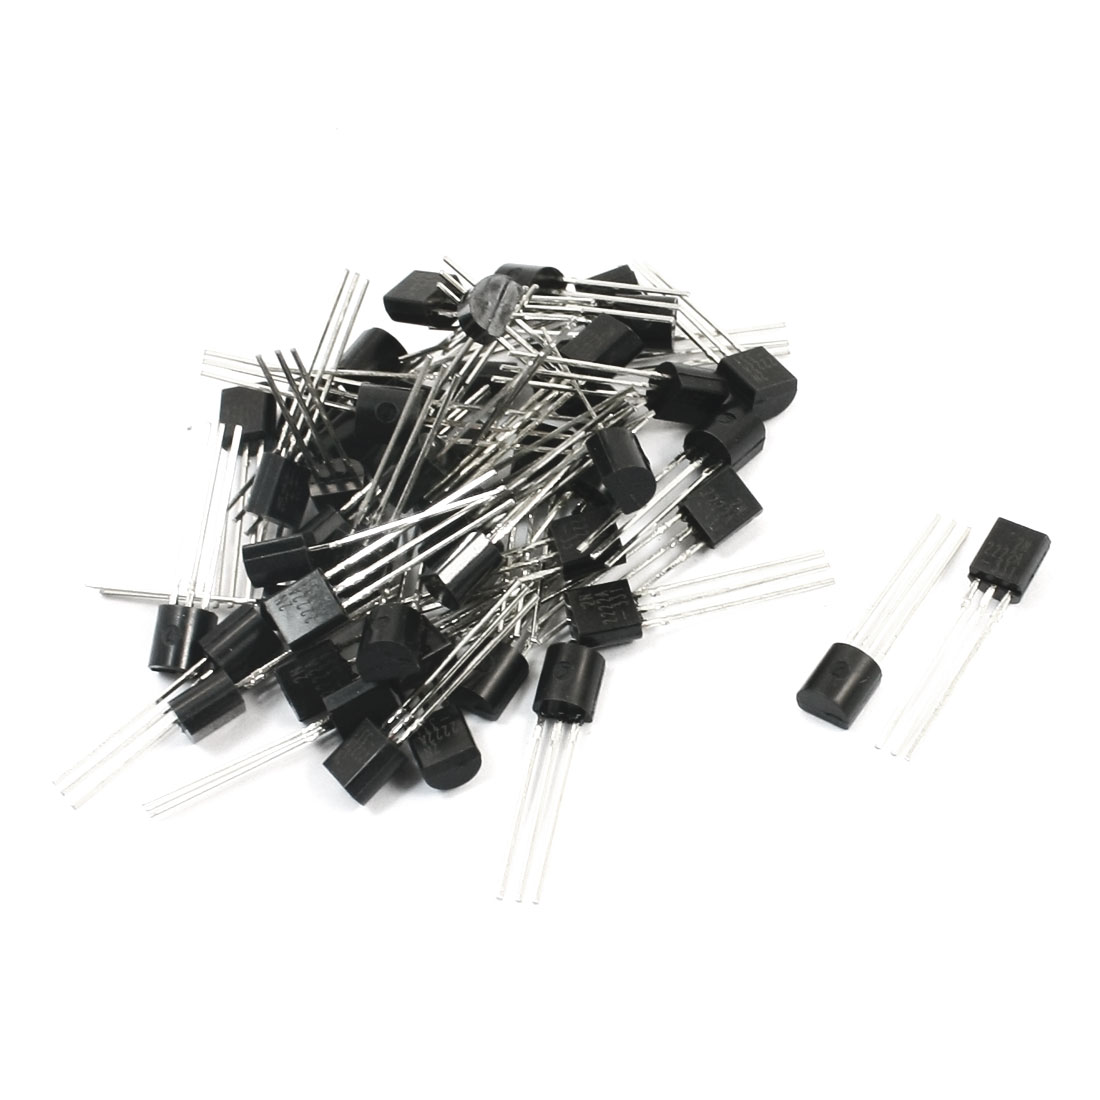 50pcs General Propose 2N2222A 40V 800mA TO-92 Package NPN Transistor